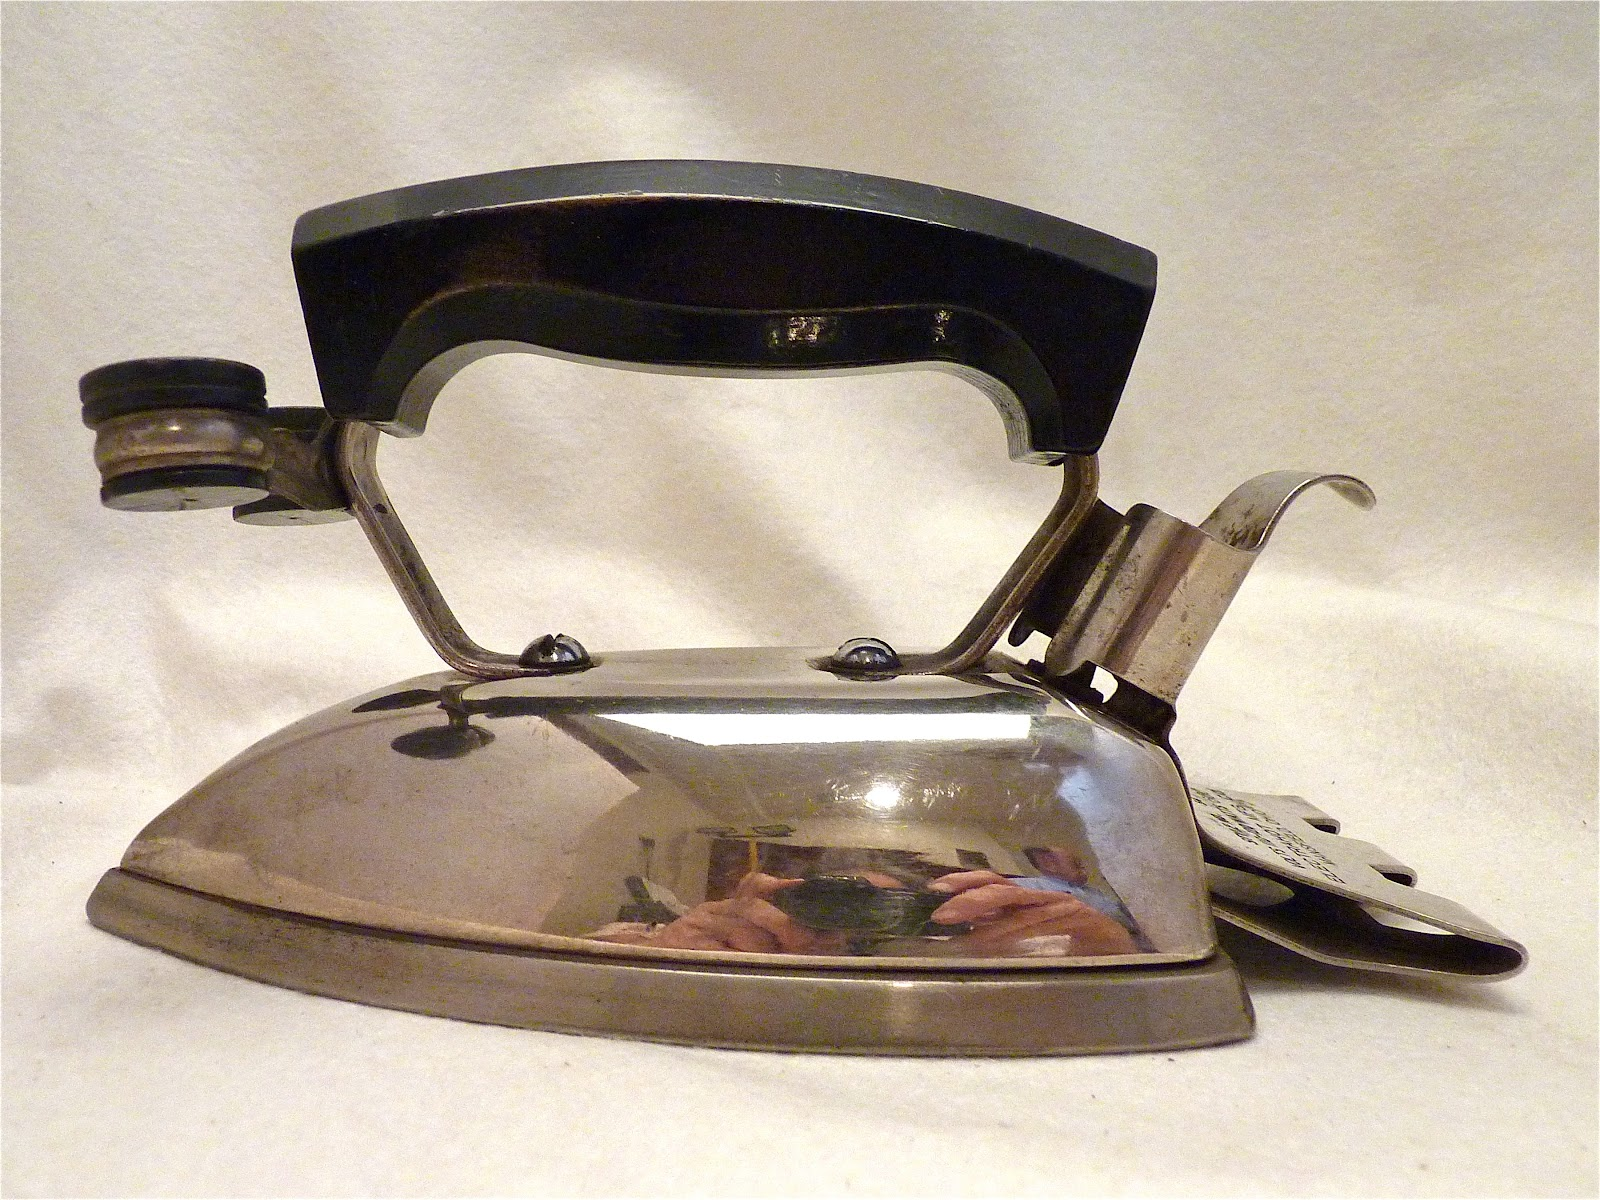 Antique Electric Irons ~ Electrahot style no vintage electric irons